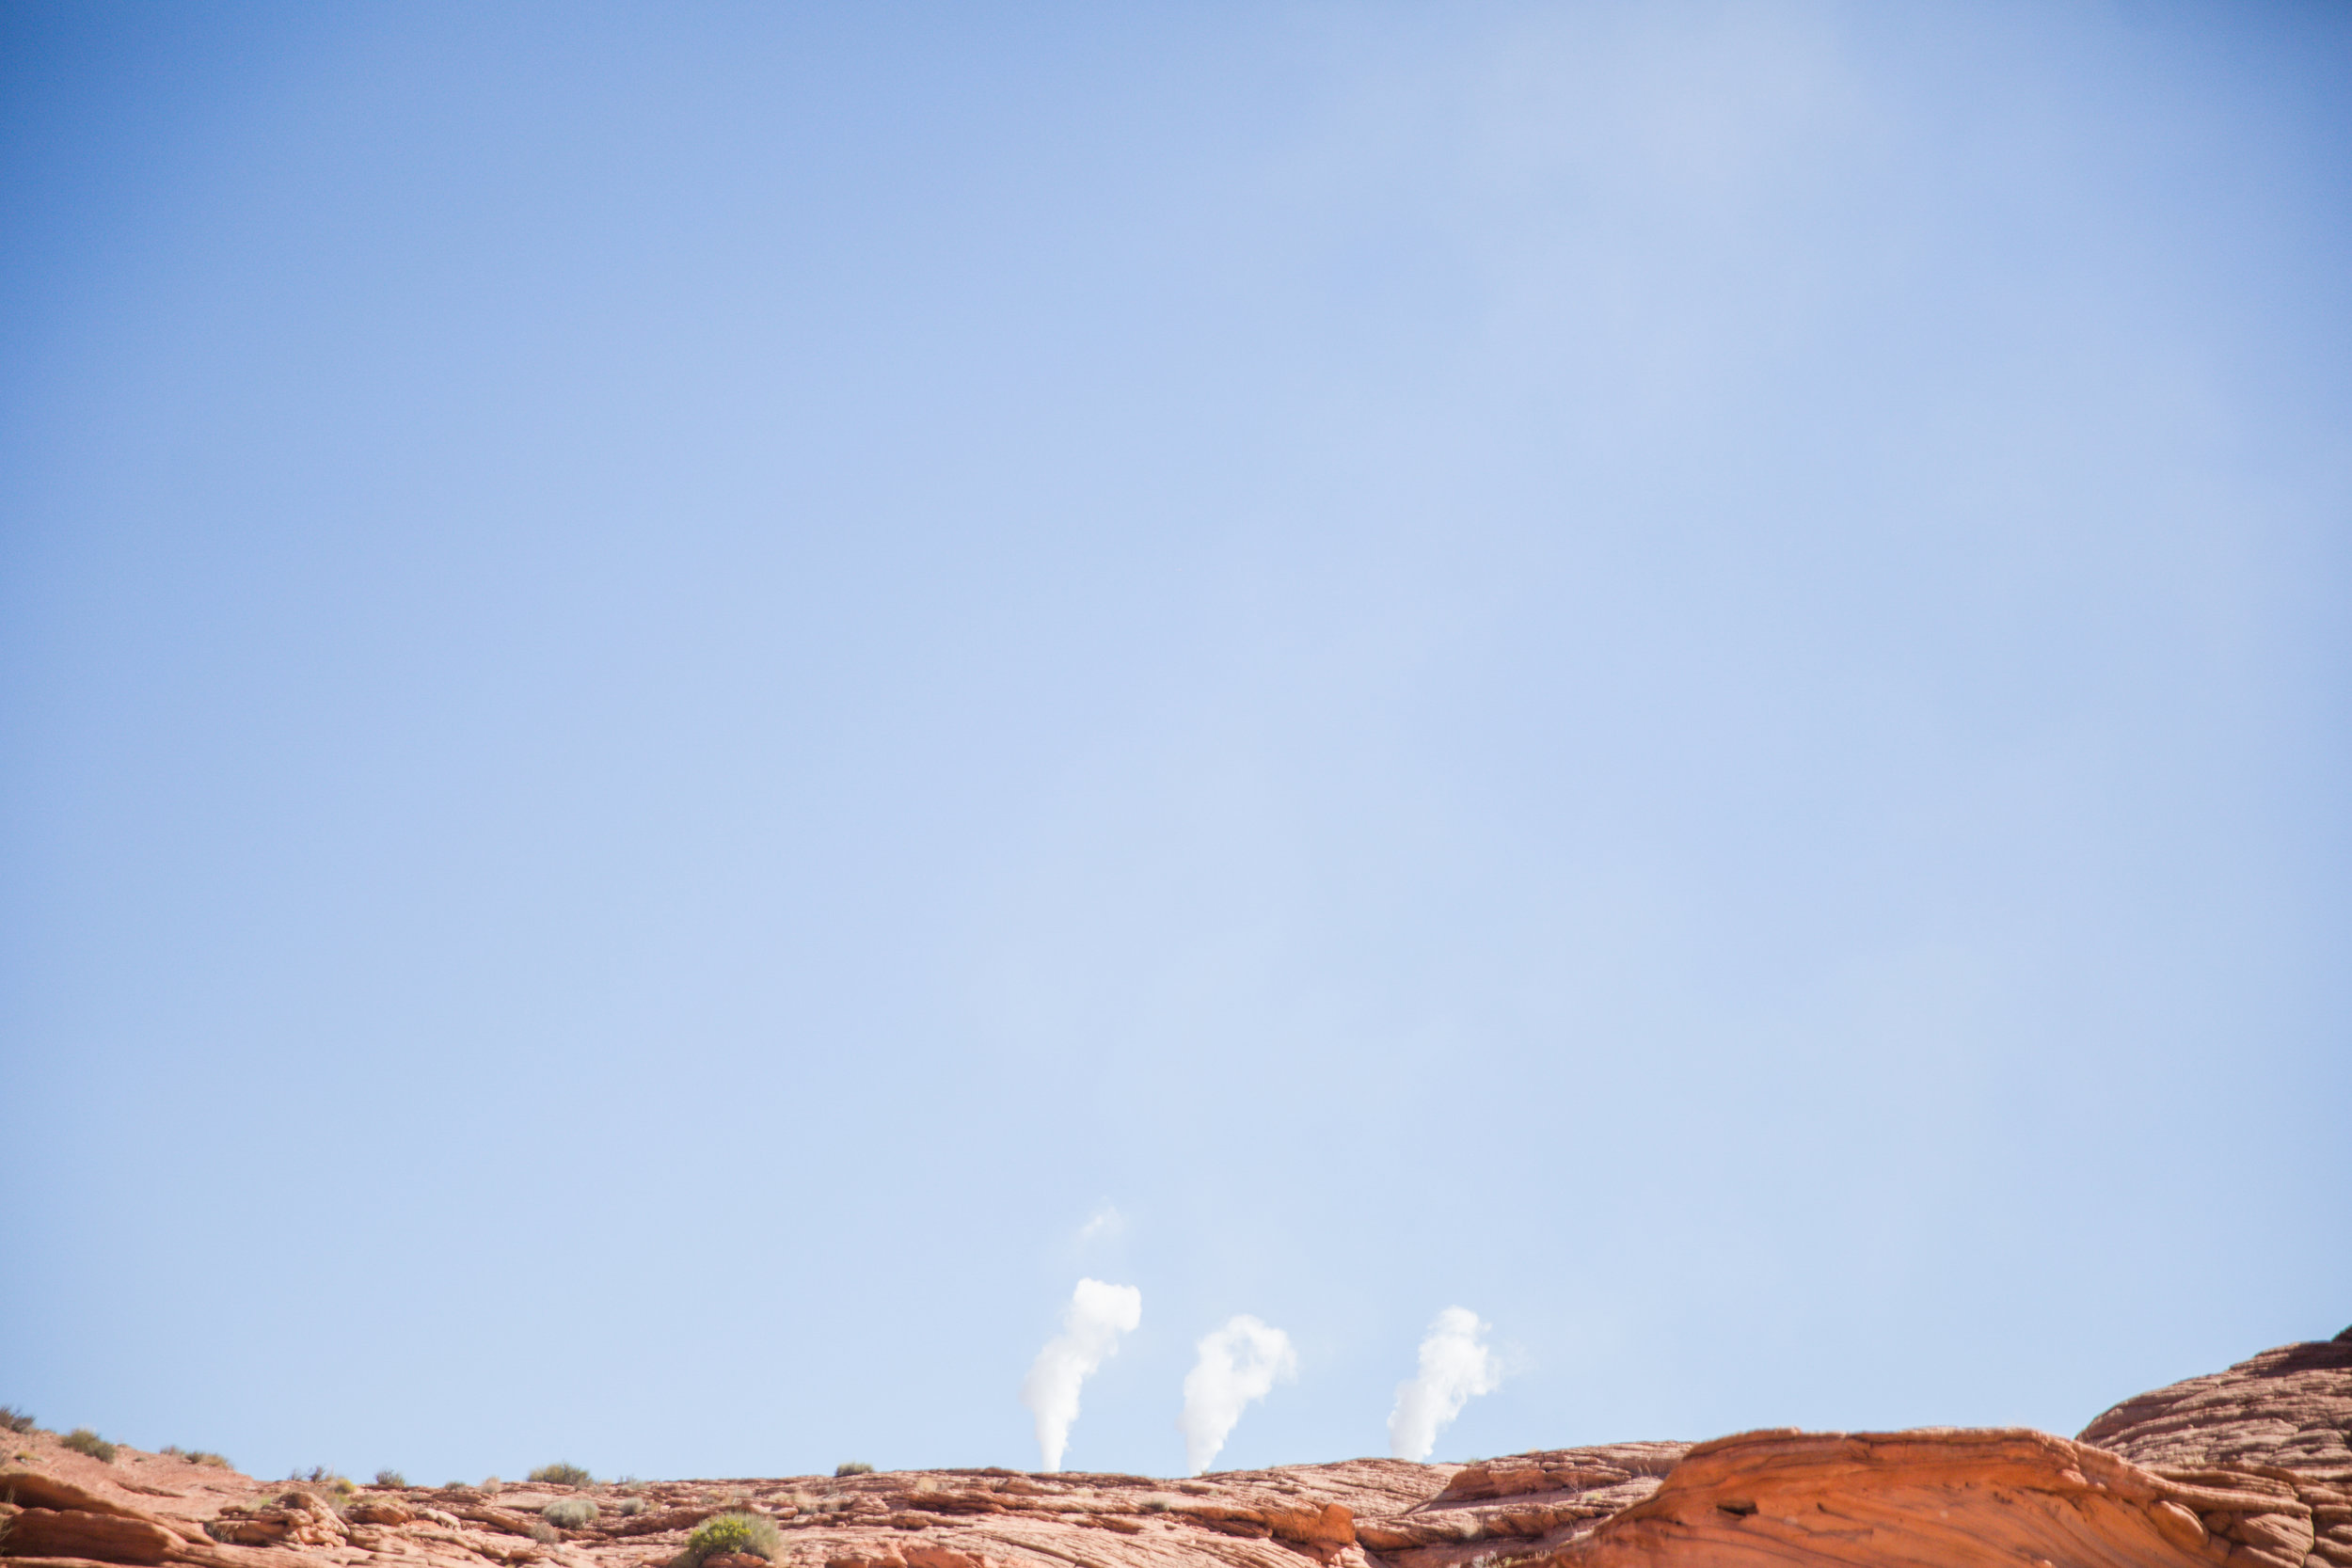 """See these smoke stacks? They mean """"I Love You"""" in Navajo. Nahhh, just kidding. I just thought they looked cool."""